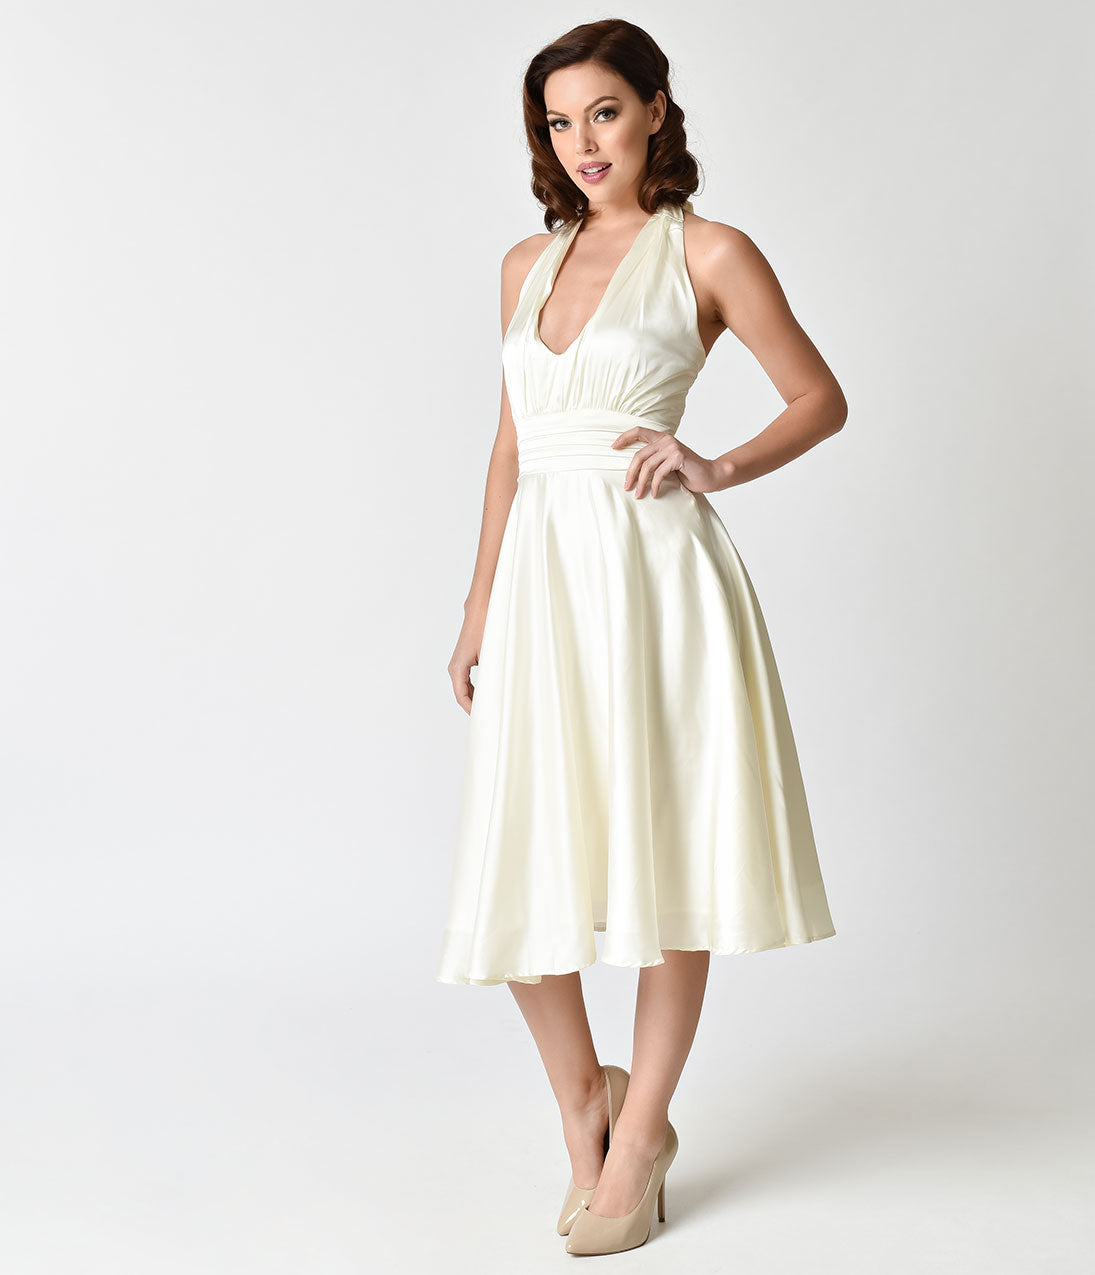 60s Wedding Dress | 1960s Style Wedding Dresses Unique Vintage 1950s Style Ivory Satin Halter Hyannis Swing Dress $98.00 AT vintagedancer.com